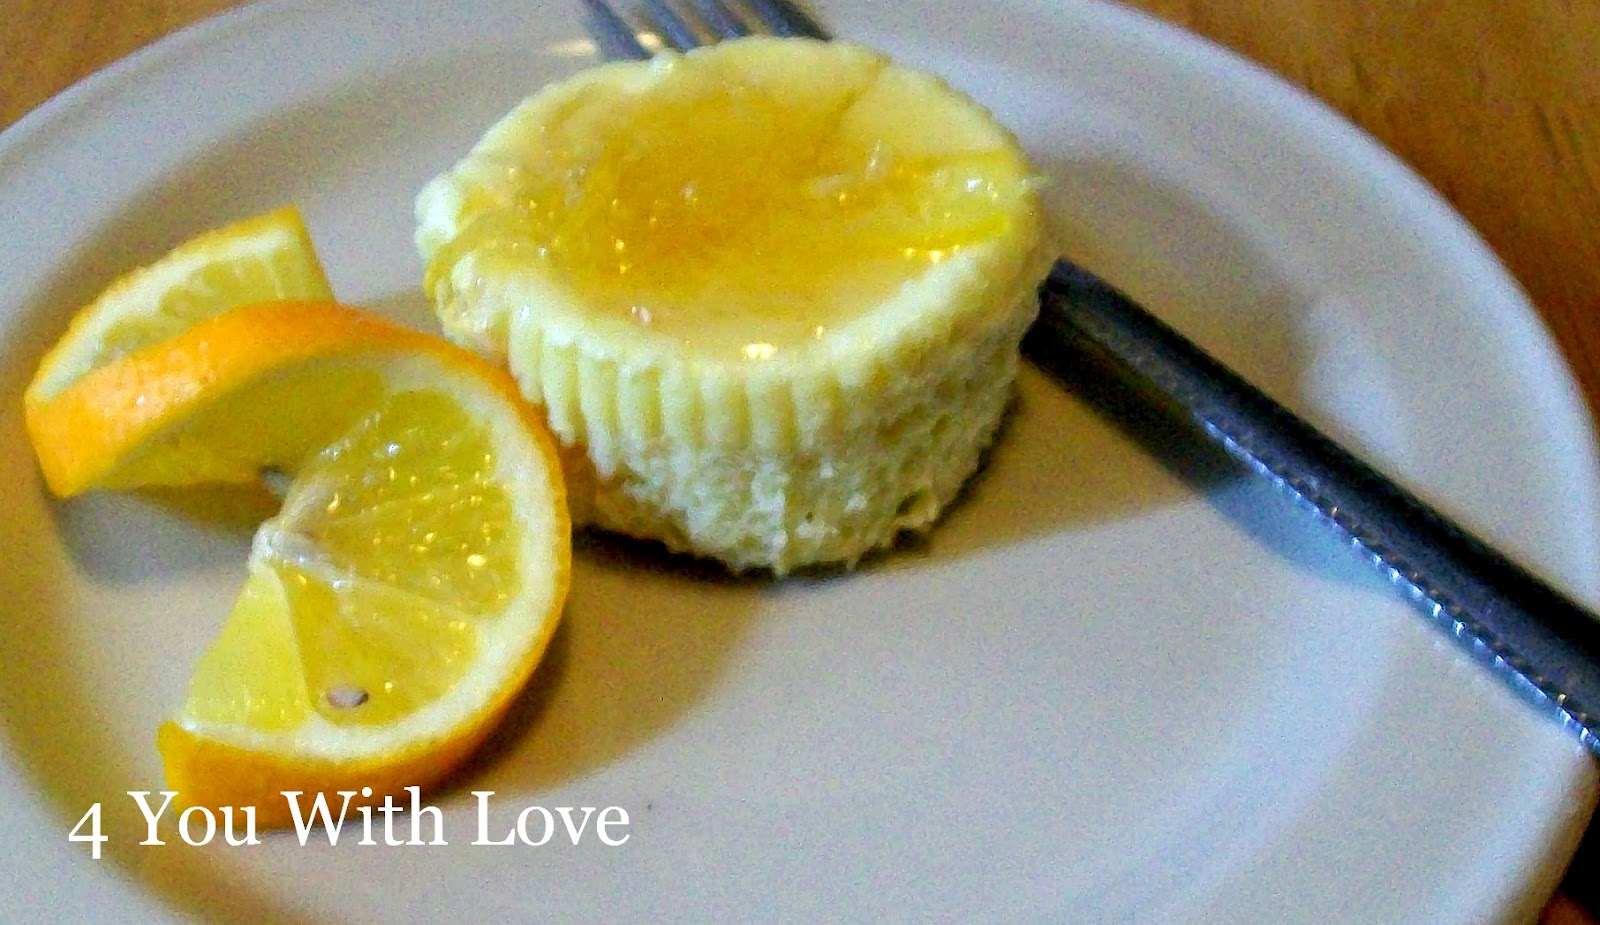 Shaker Lemon Mini Cheesecakes - 4 You With Love